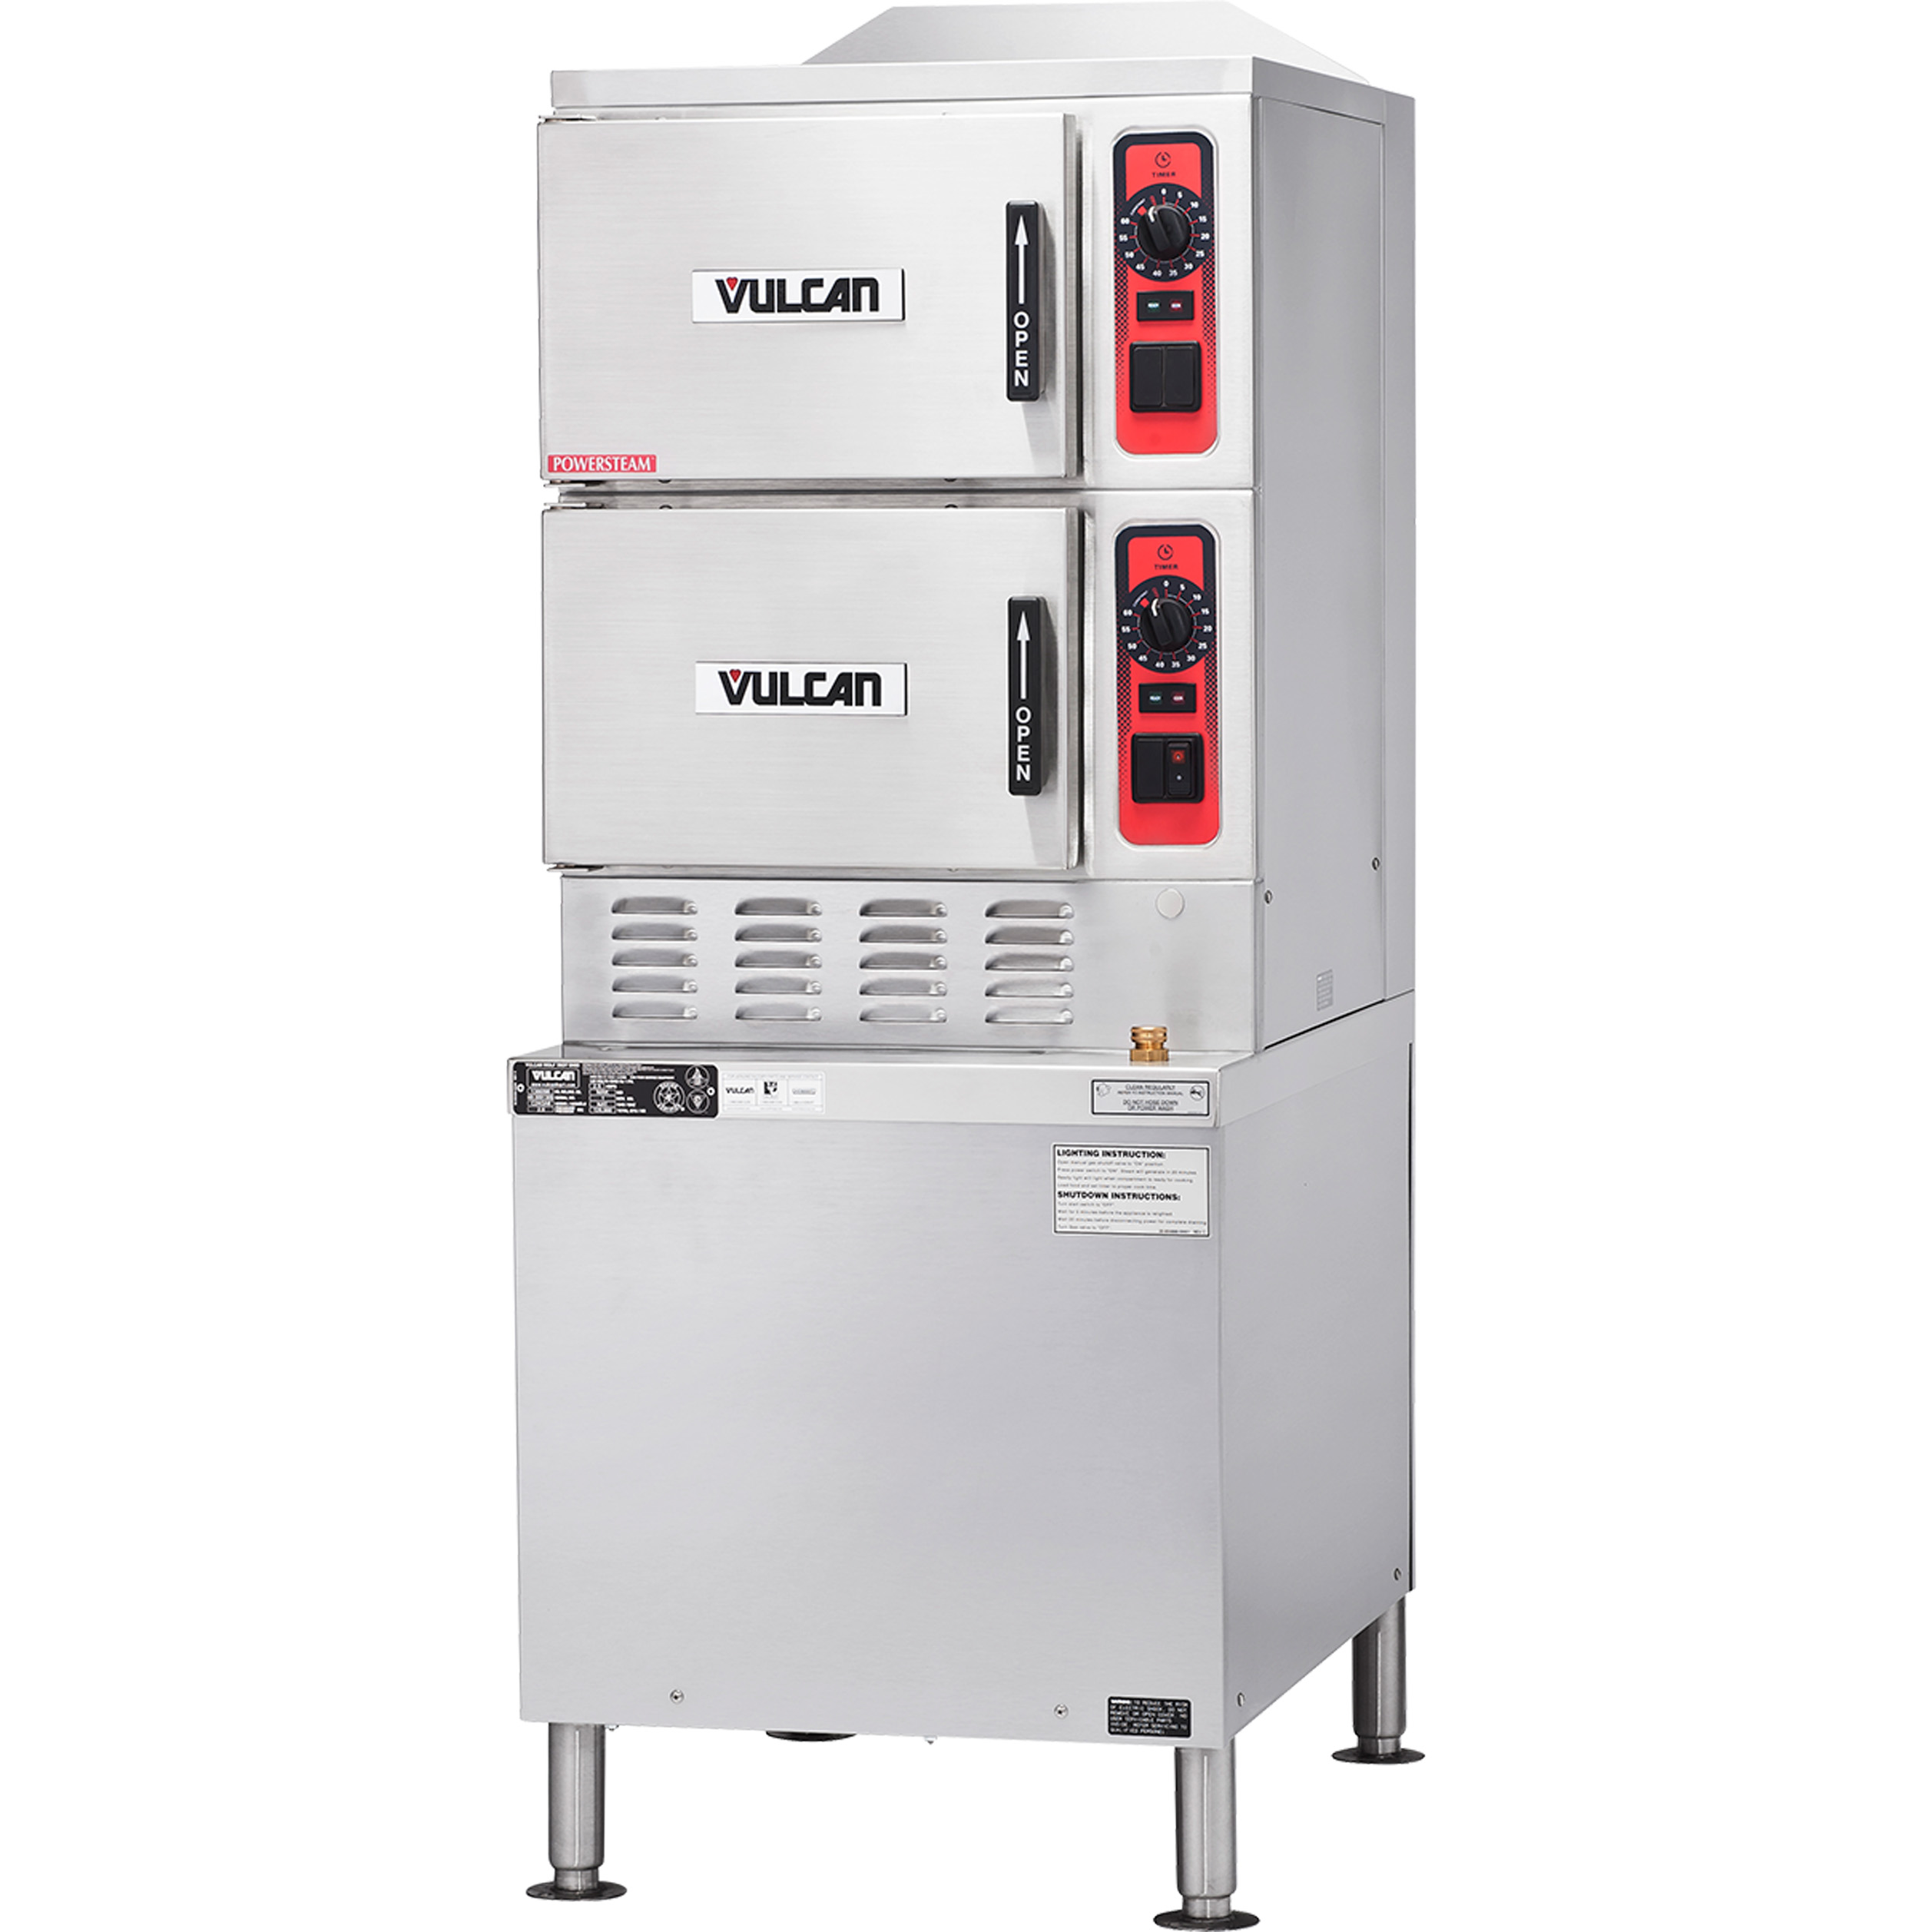 Vulcan C24GA10 PS steamer, convection, gas, floor model